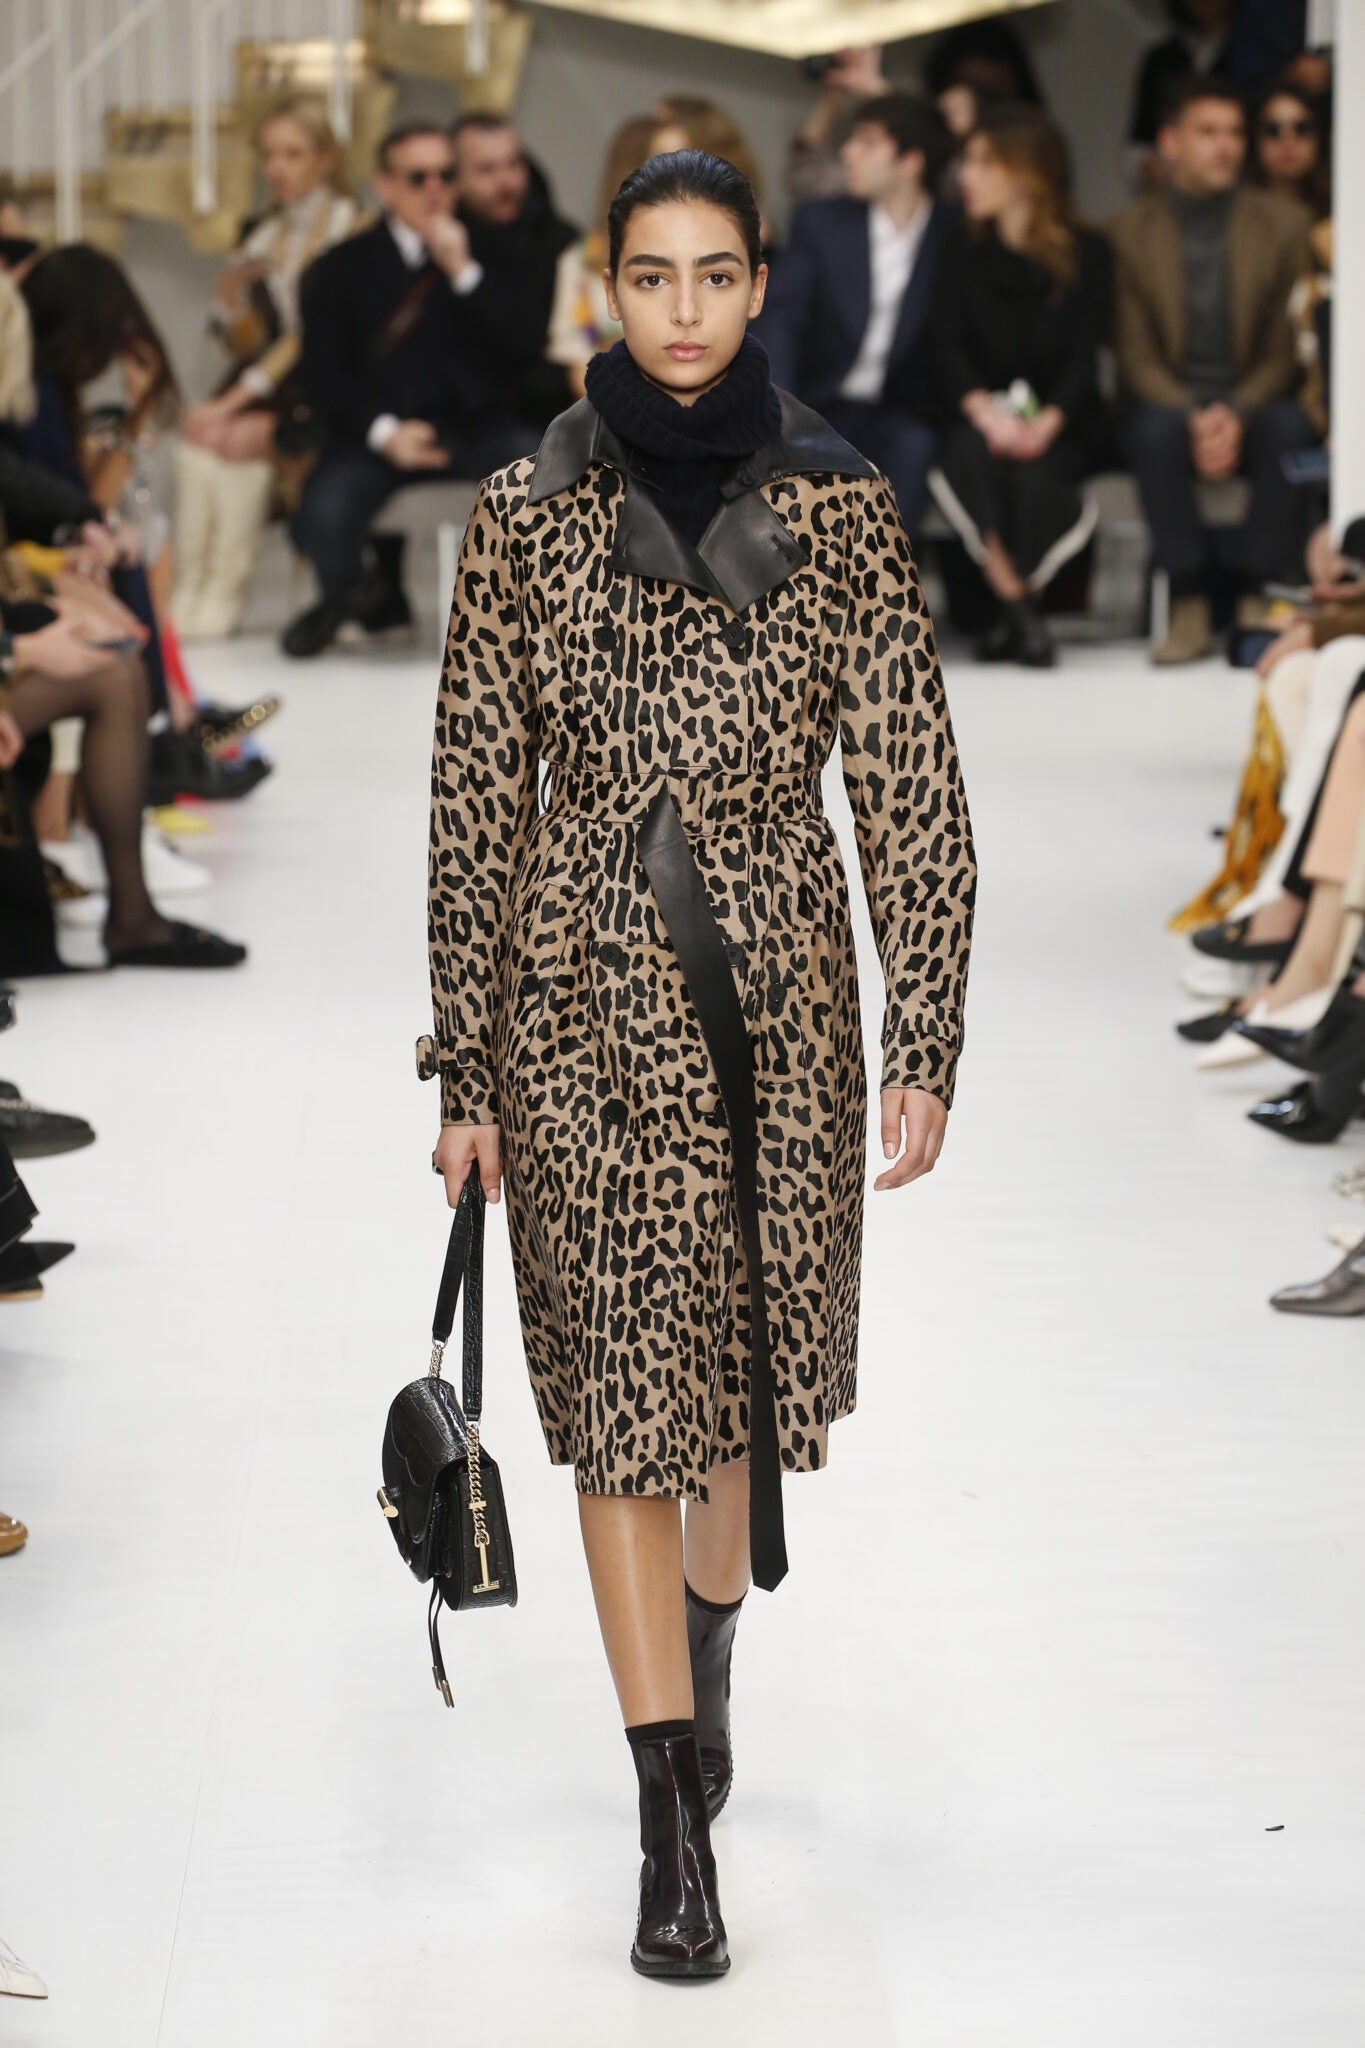 FOR EDITORIAL USE ONLY. Tod's Milan Ready to Wear. Autumn/Winter 2019. Moroccan model Nora Attal.  ALTERNATIVE IMAGES AVAILABLE ON REQUEST.